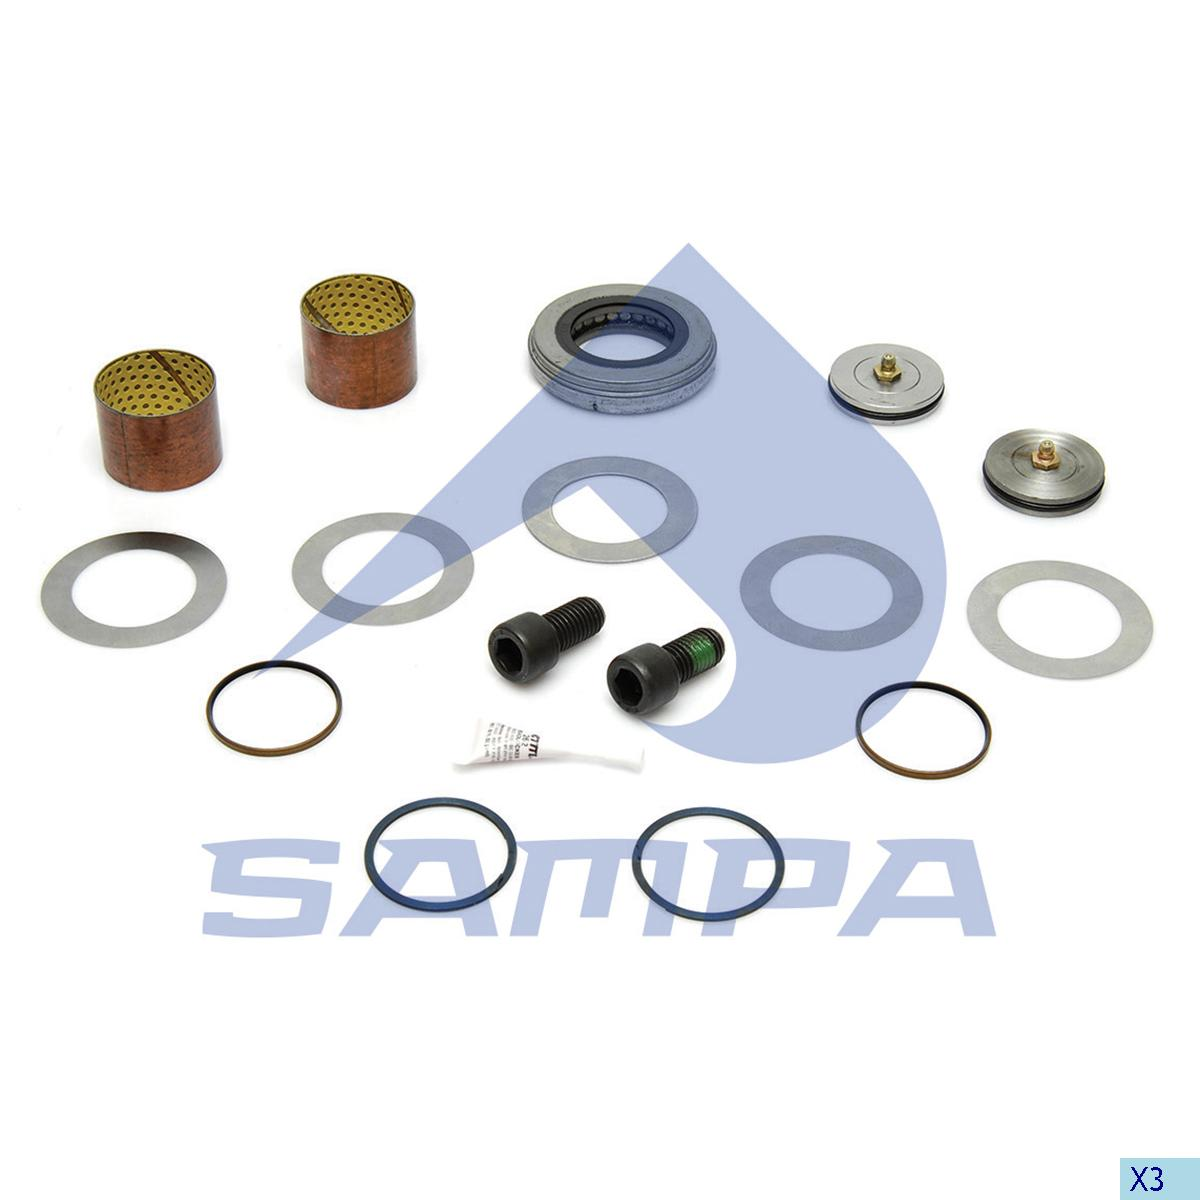 King Pin Kit, Axle Steering Knuckle, Hendrickson, Power Unit